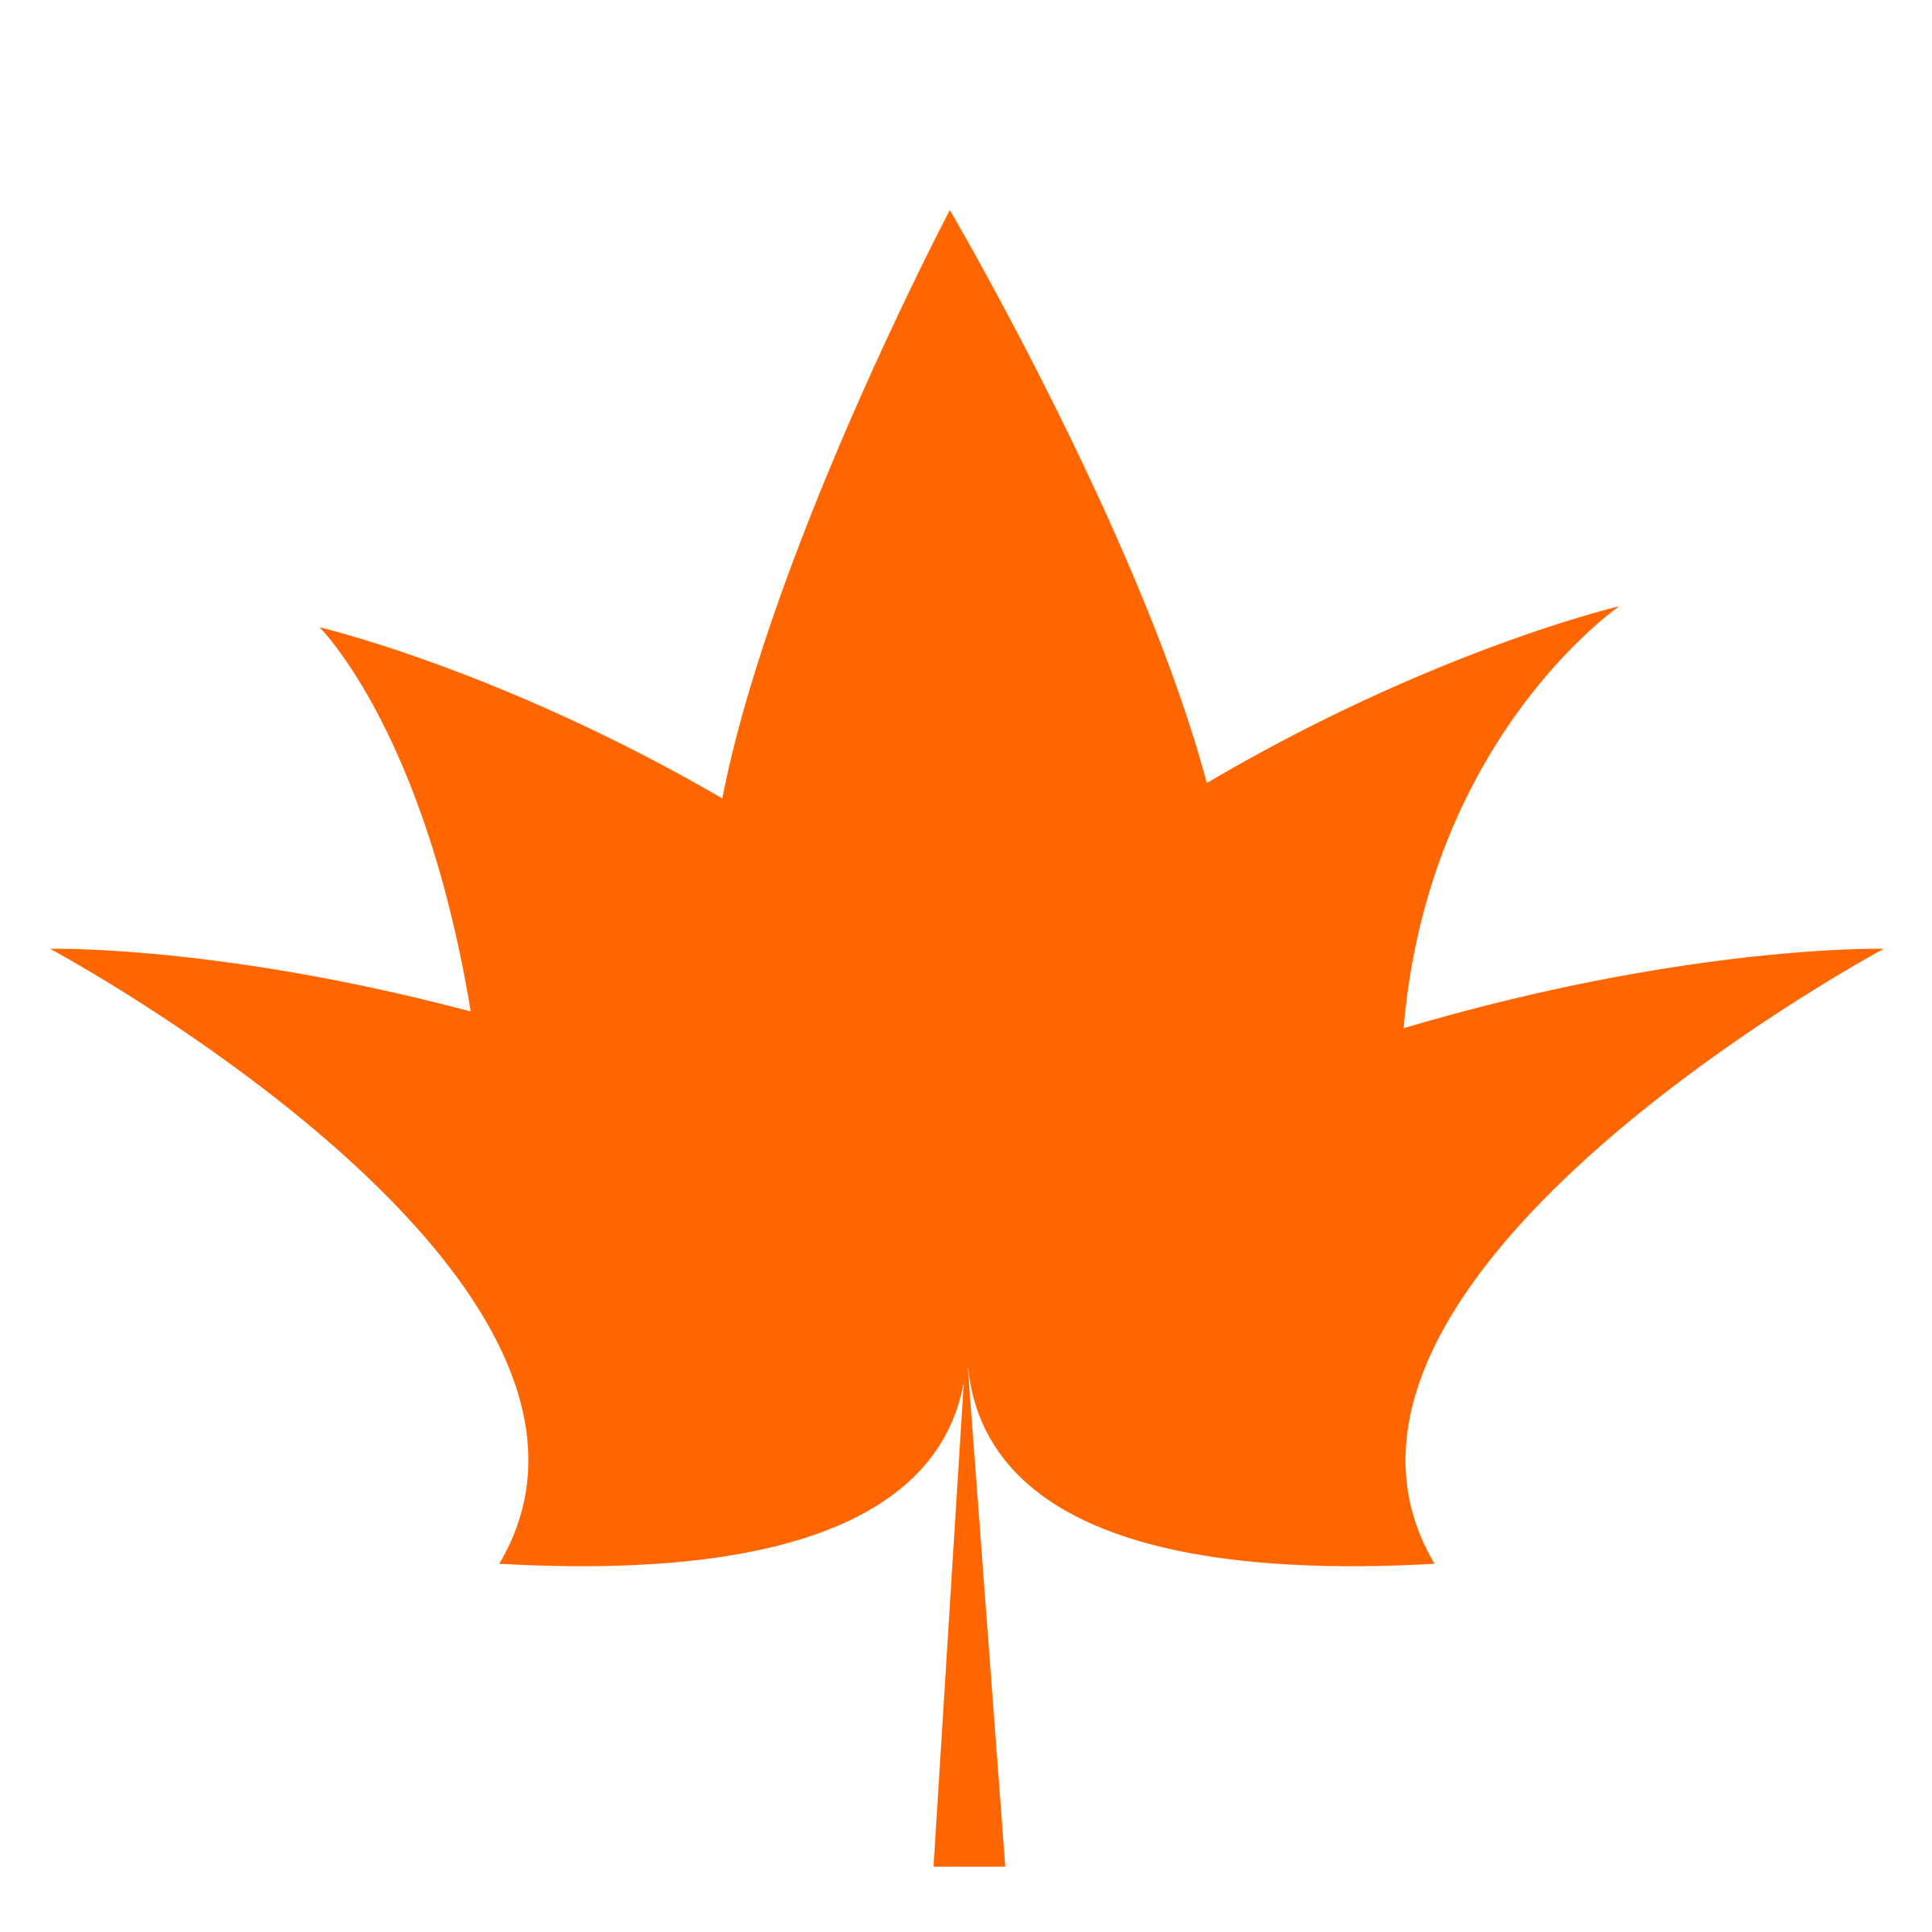 Maple leaf one flat. Number 1 clipart color